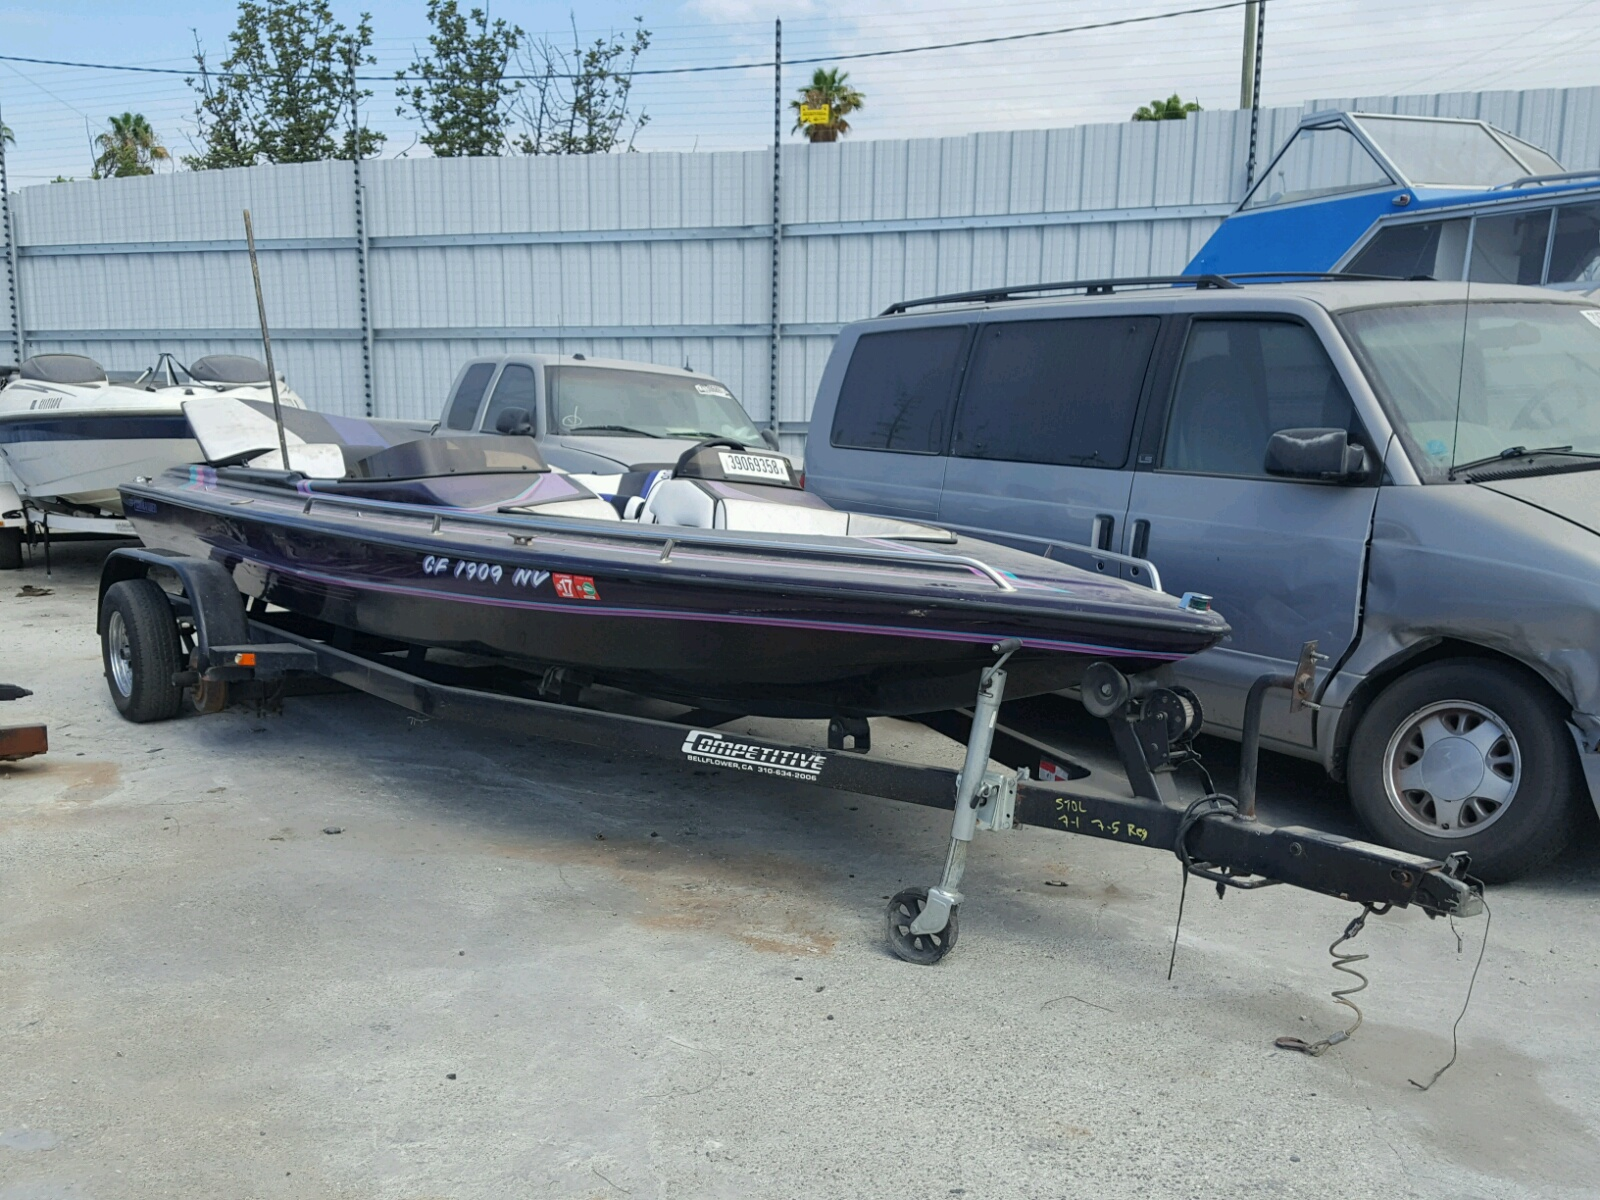 Salvage 1995 Chalet BOAT for sale